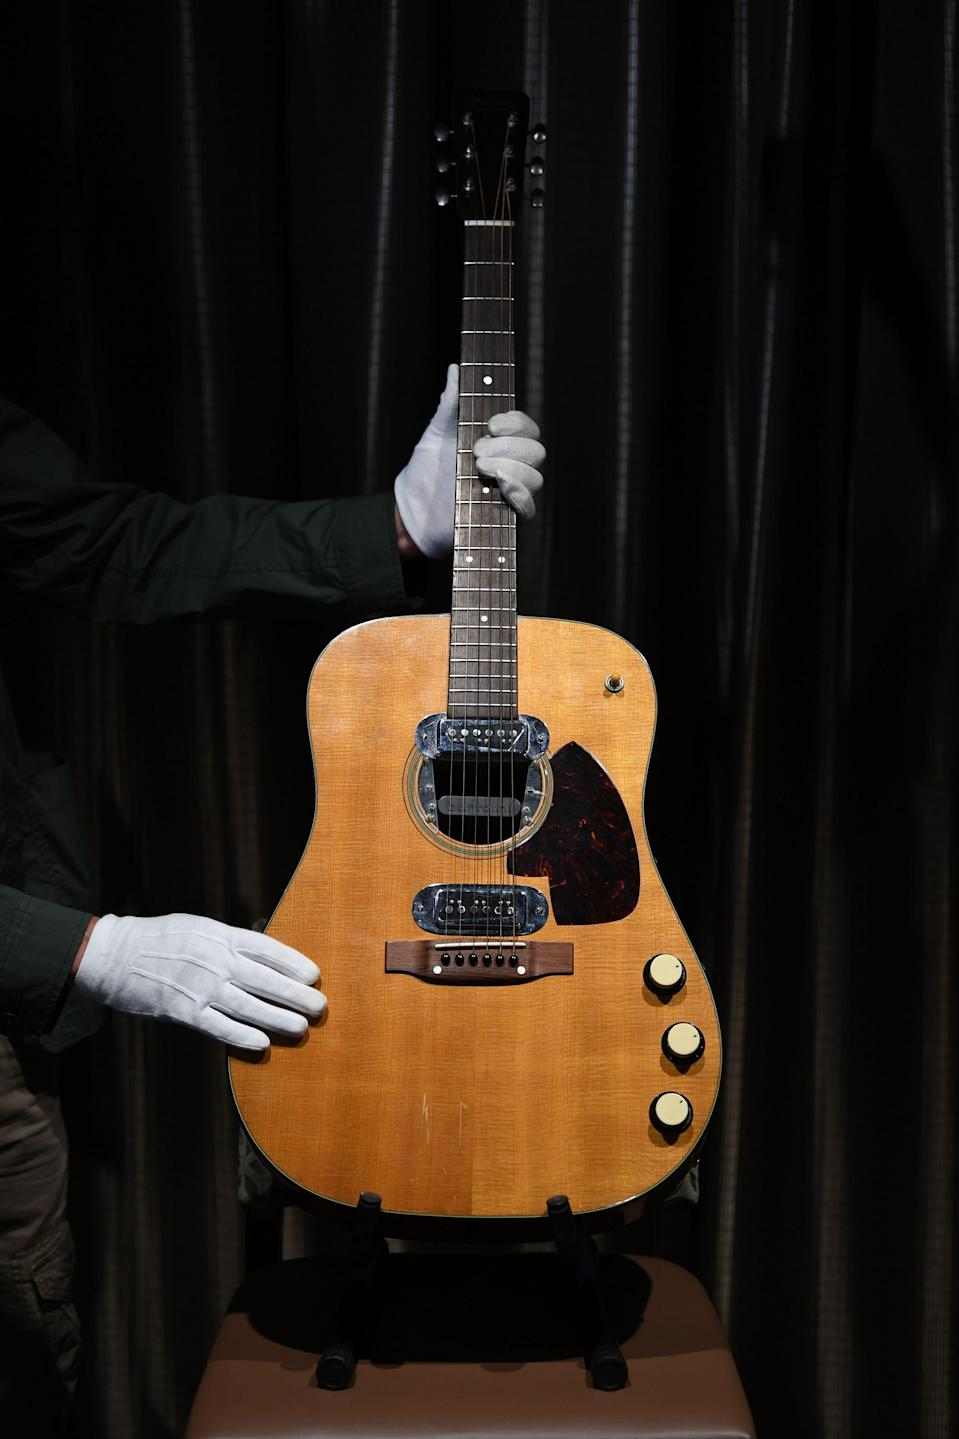 Co-owner of Julien's Auctions, Martin Nolan displays the guitar used by musician Kurt Cobain during Nirvana's famous MTV Unplugged in New York concert in 1993, at the Hard Rock Cafe Piccadilly Circus in central London on May 15, 2020, prior to the auction of the guitar in Beverly Hills in June. - The 1959 Martin D-18E featured in the band's performance in November 1993, five months before Cobain's death at the age of 27. (Photo by DANIEL LEAL-OLIVAS / AFP) (Photo by DANIEL LEAL-OLIVAS/AFP via Getty Images)